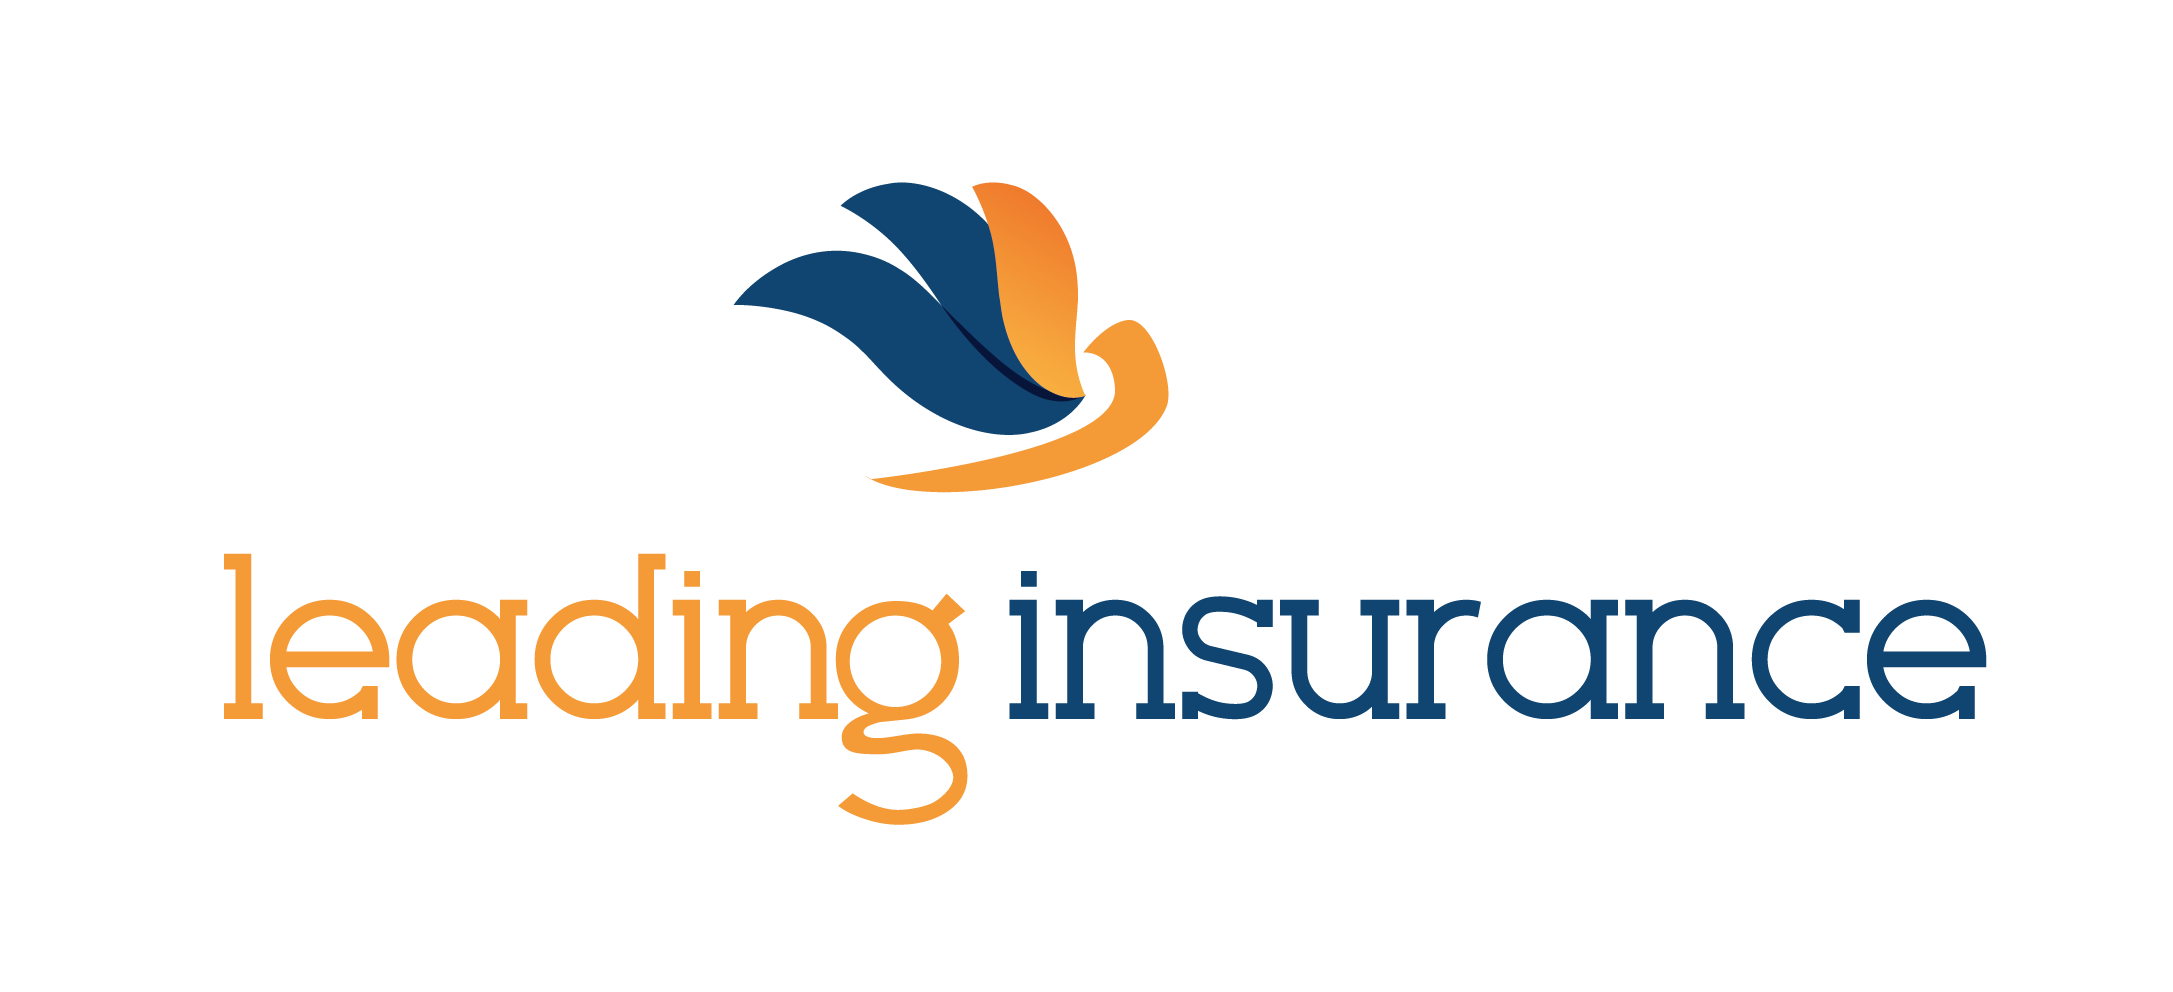 1408_Logo leadinginsurance-01